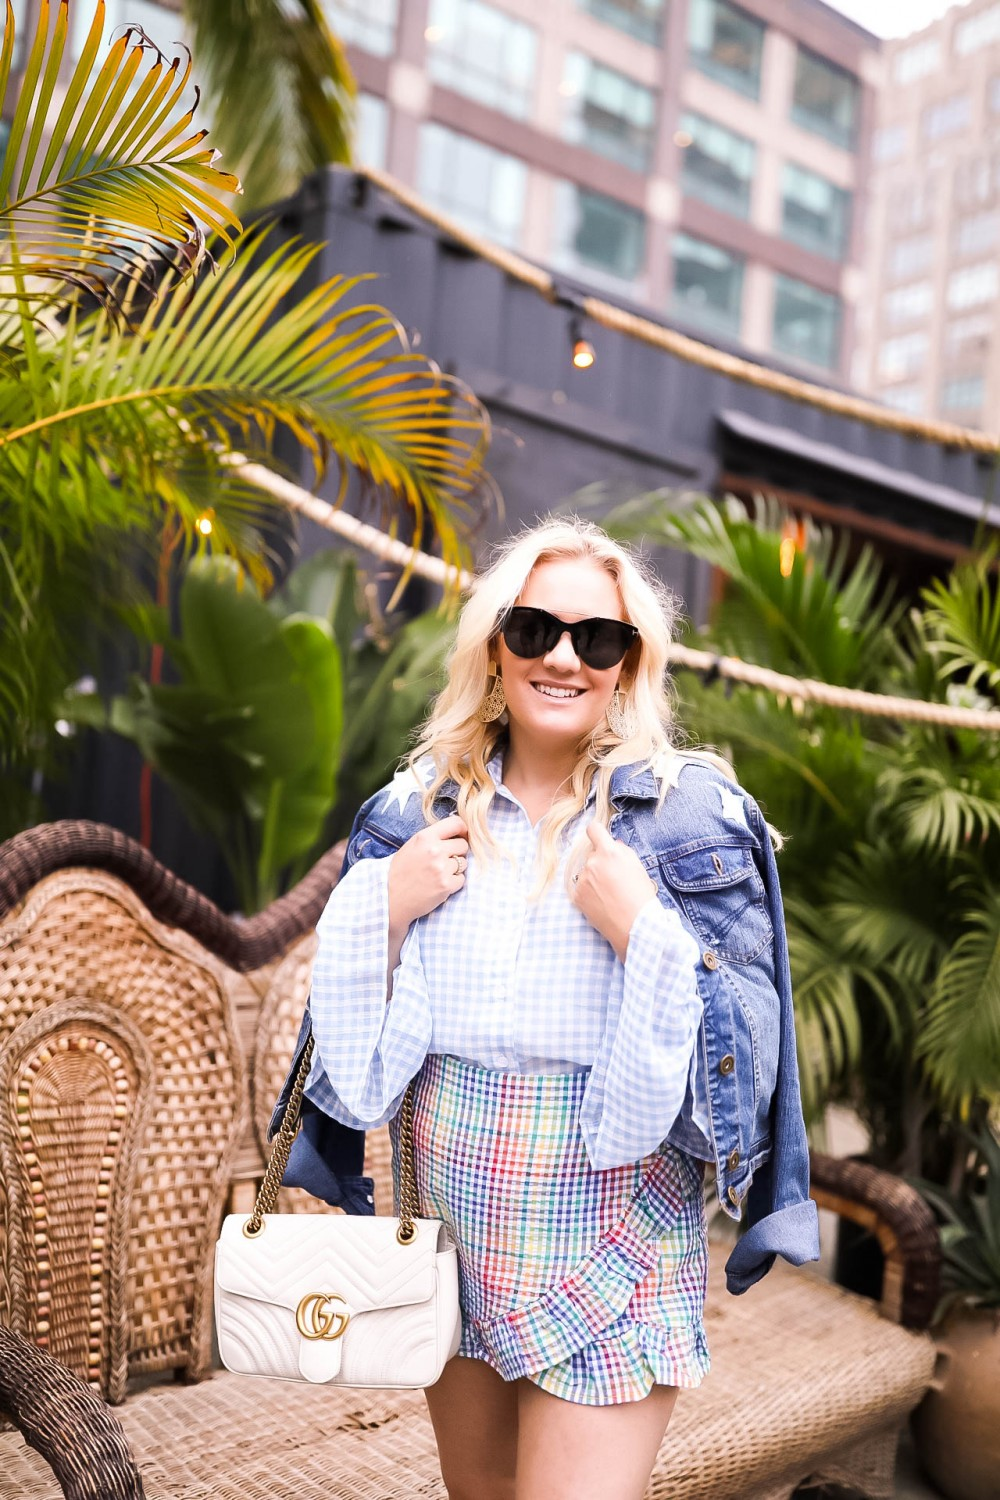 Gingham and Ruffles, Gingham on Gingham Outfit, NYFW, Outfit Inspiration, Have Need Want